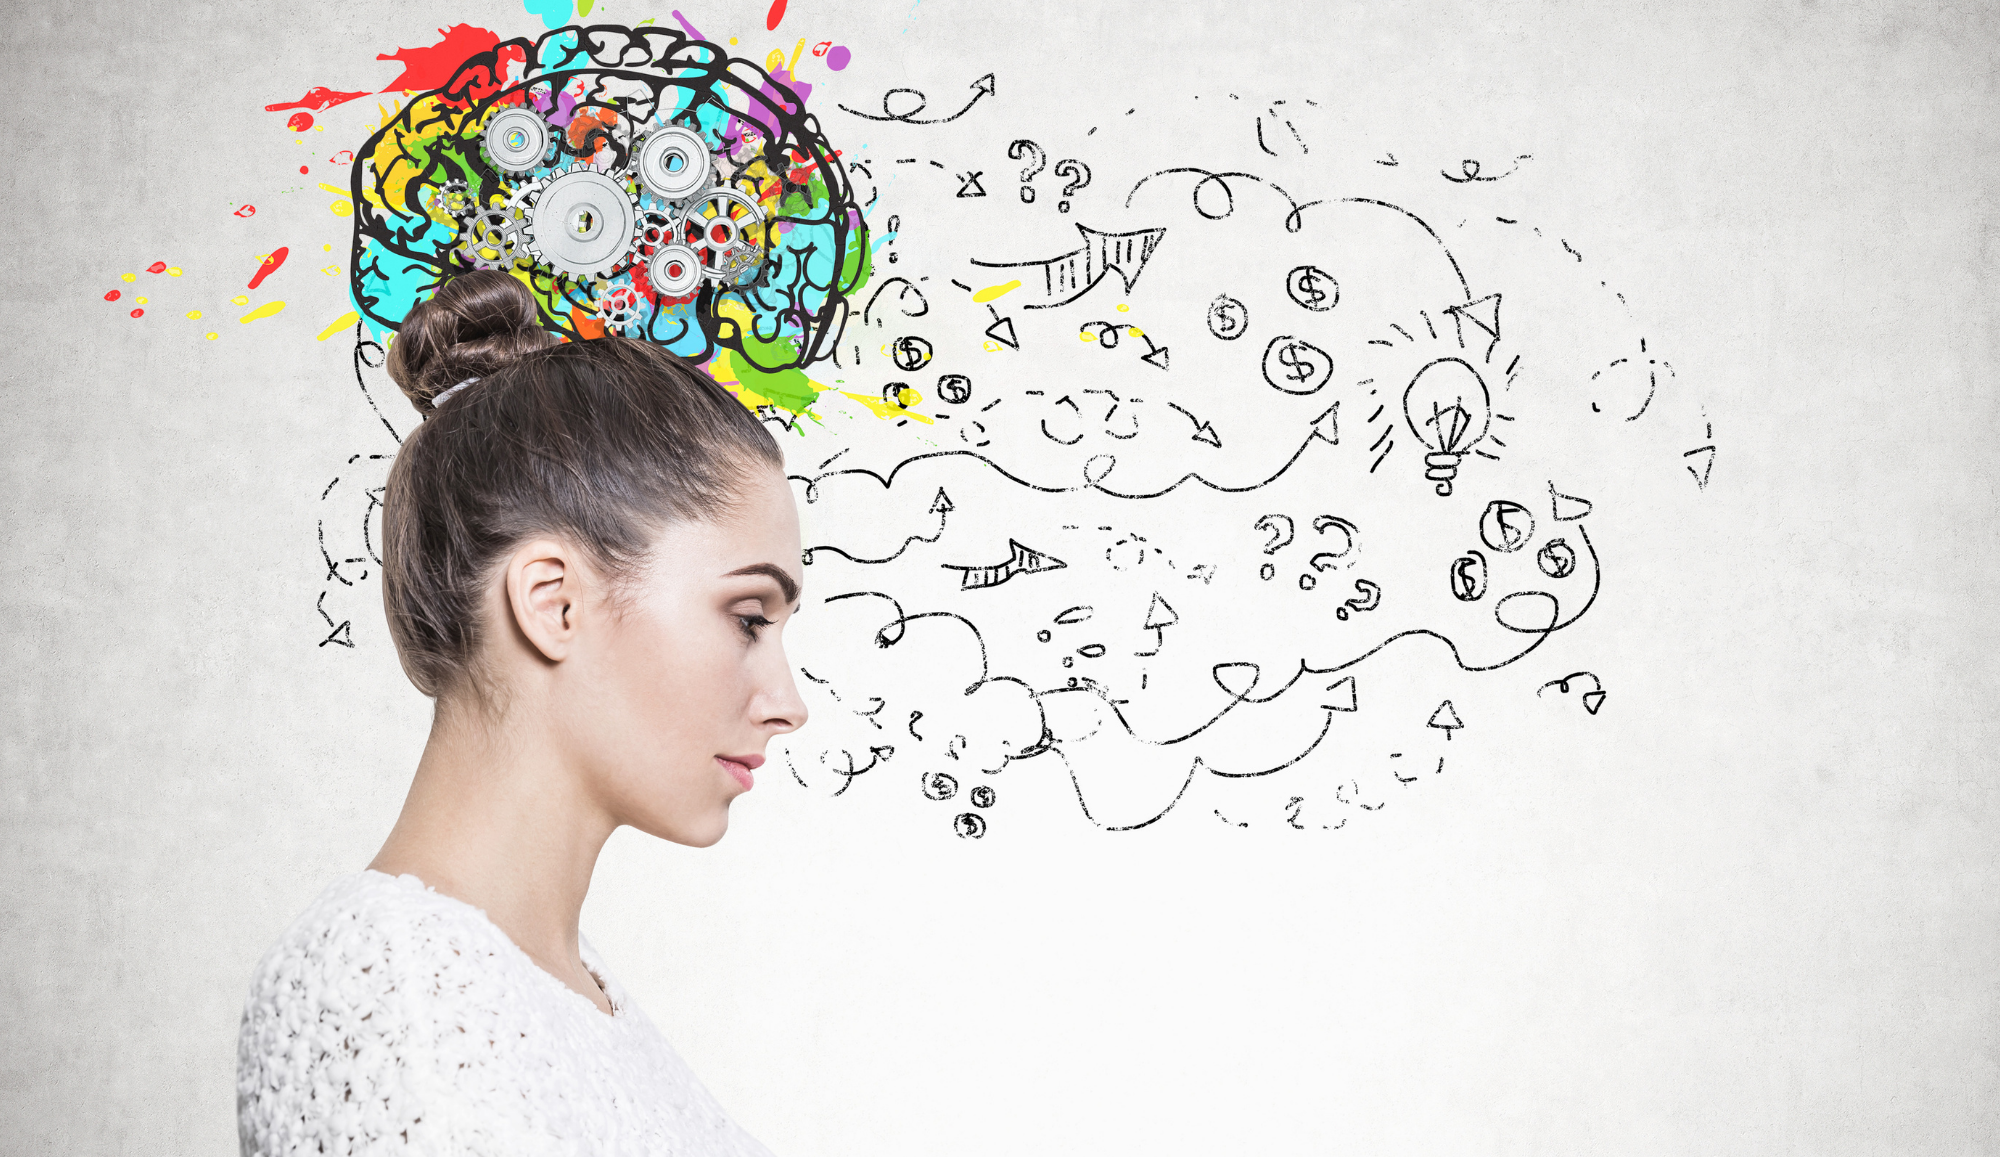 Rewiring the Brain: Cognitive Cycle